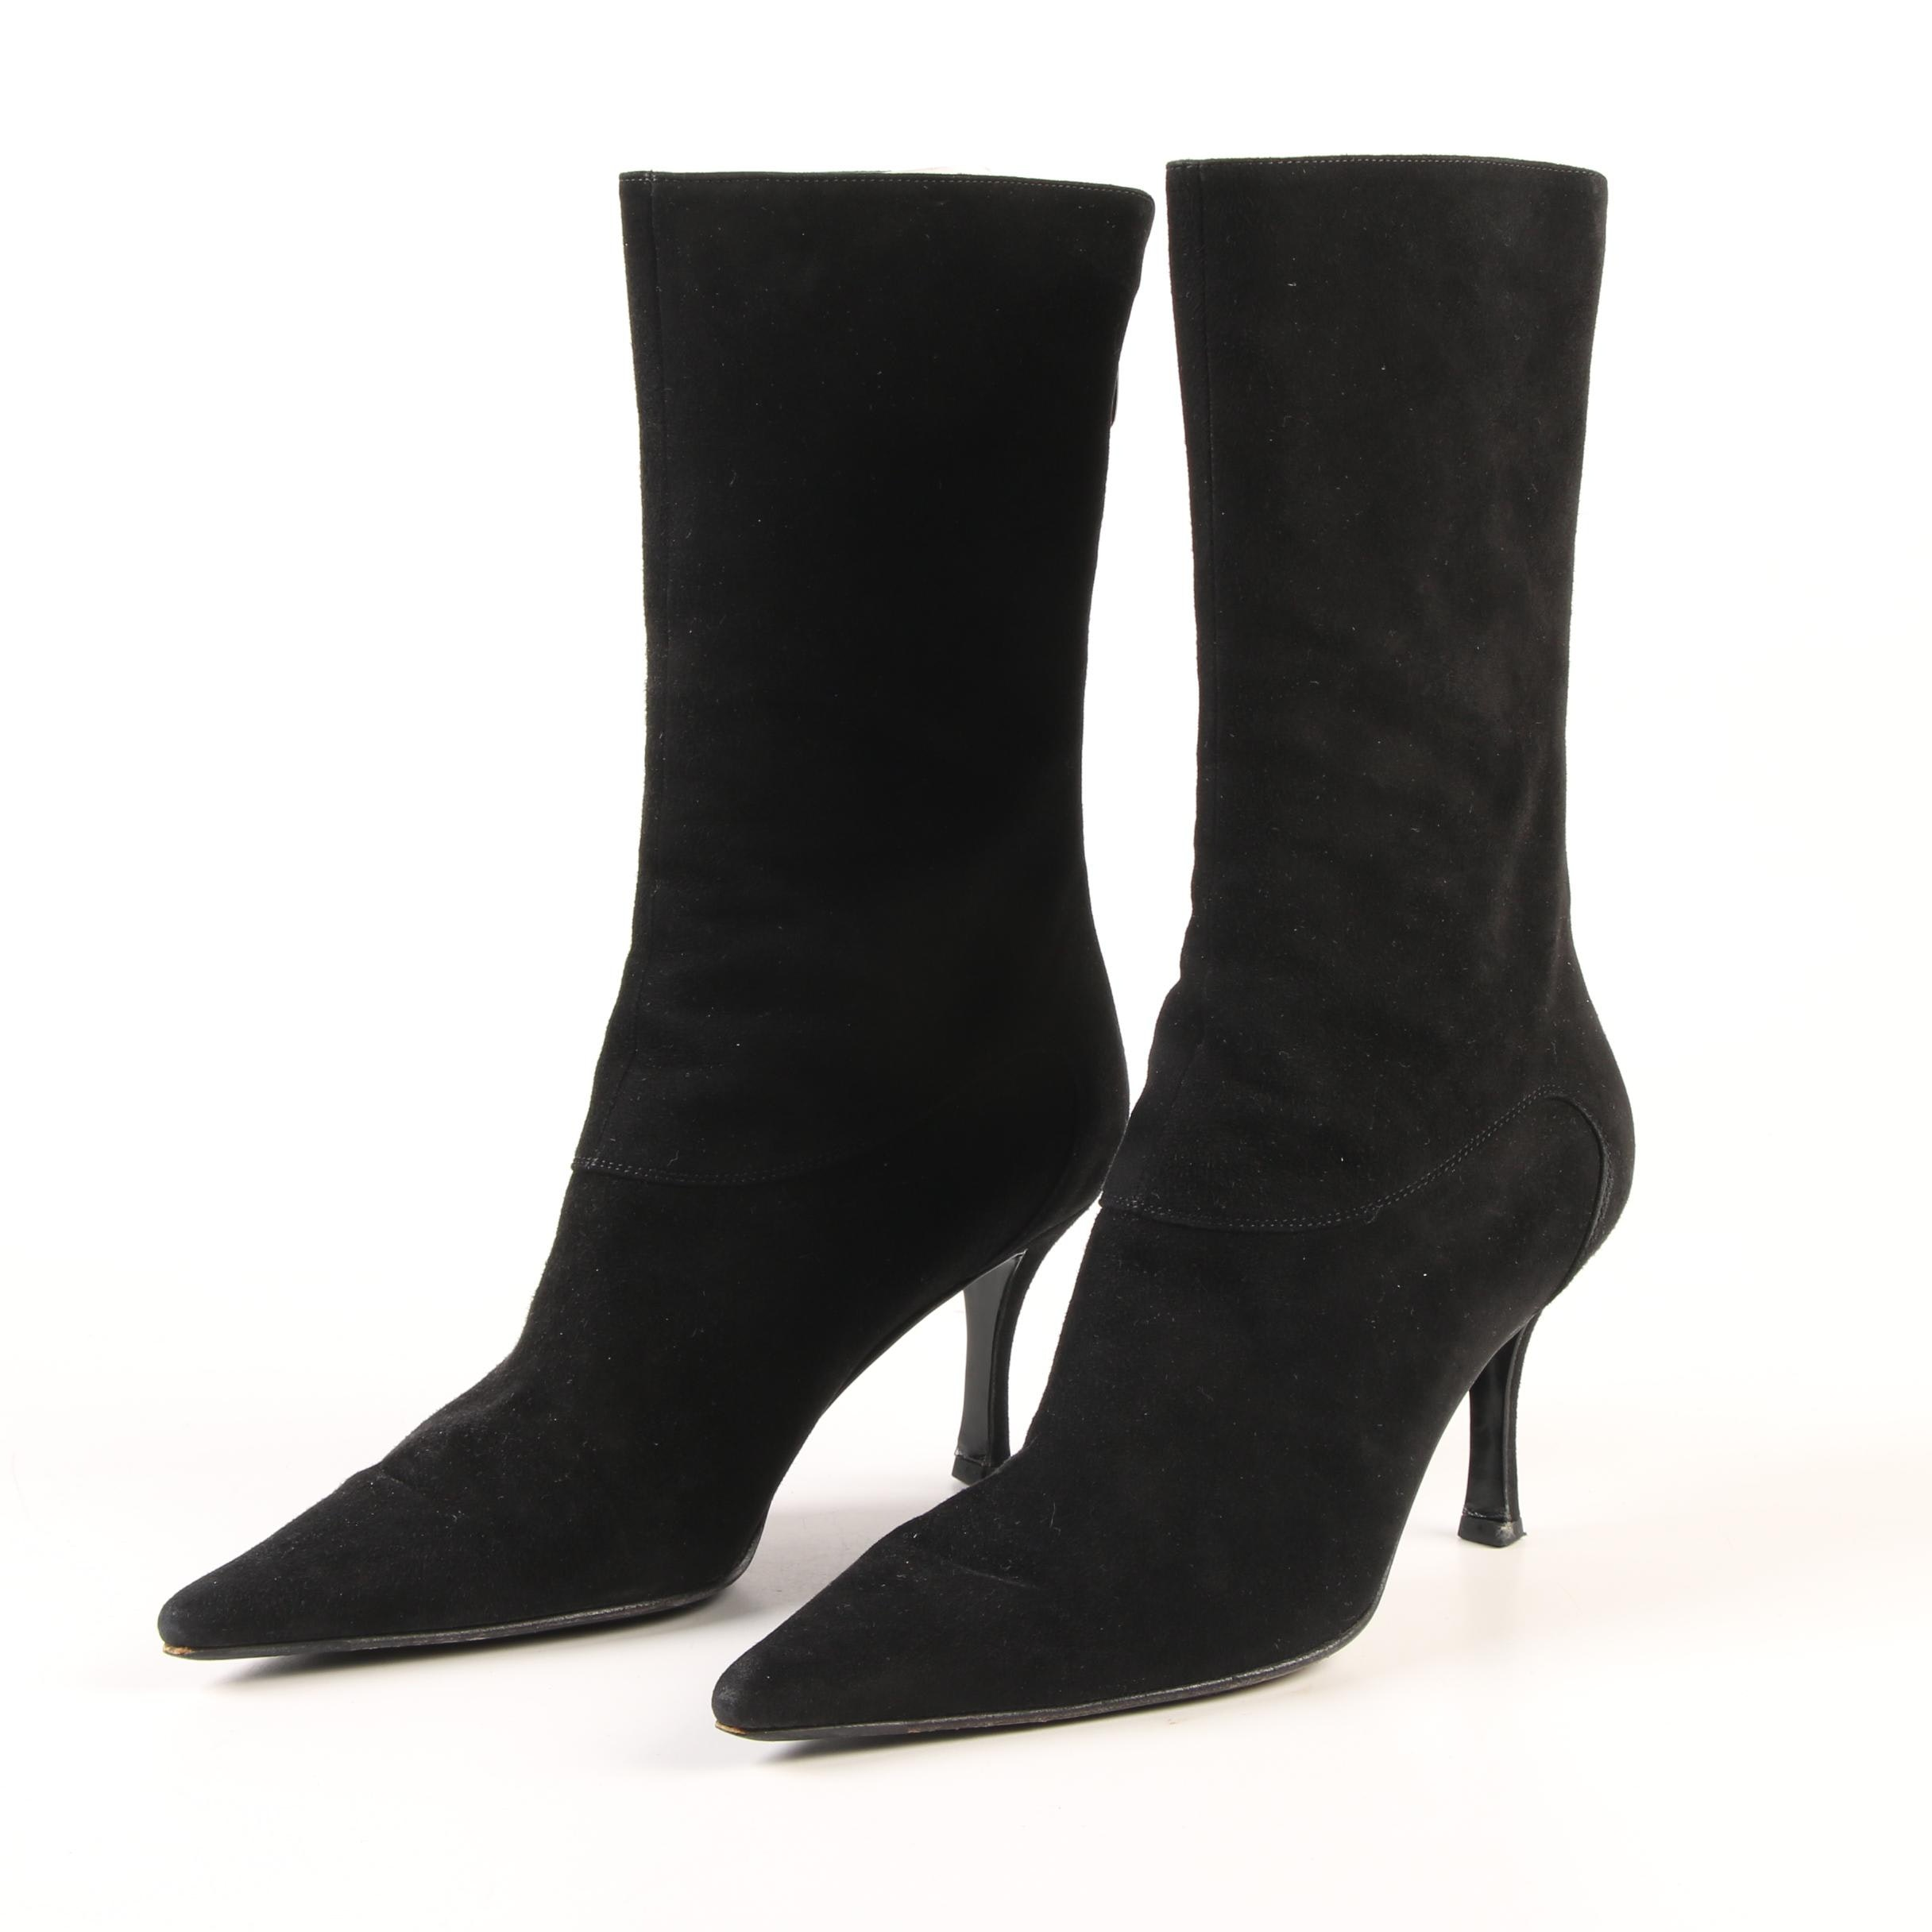 Sergio Rossi Black Suede Pointed Toe Mid-Calf High Heel Boots